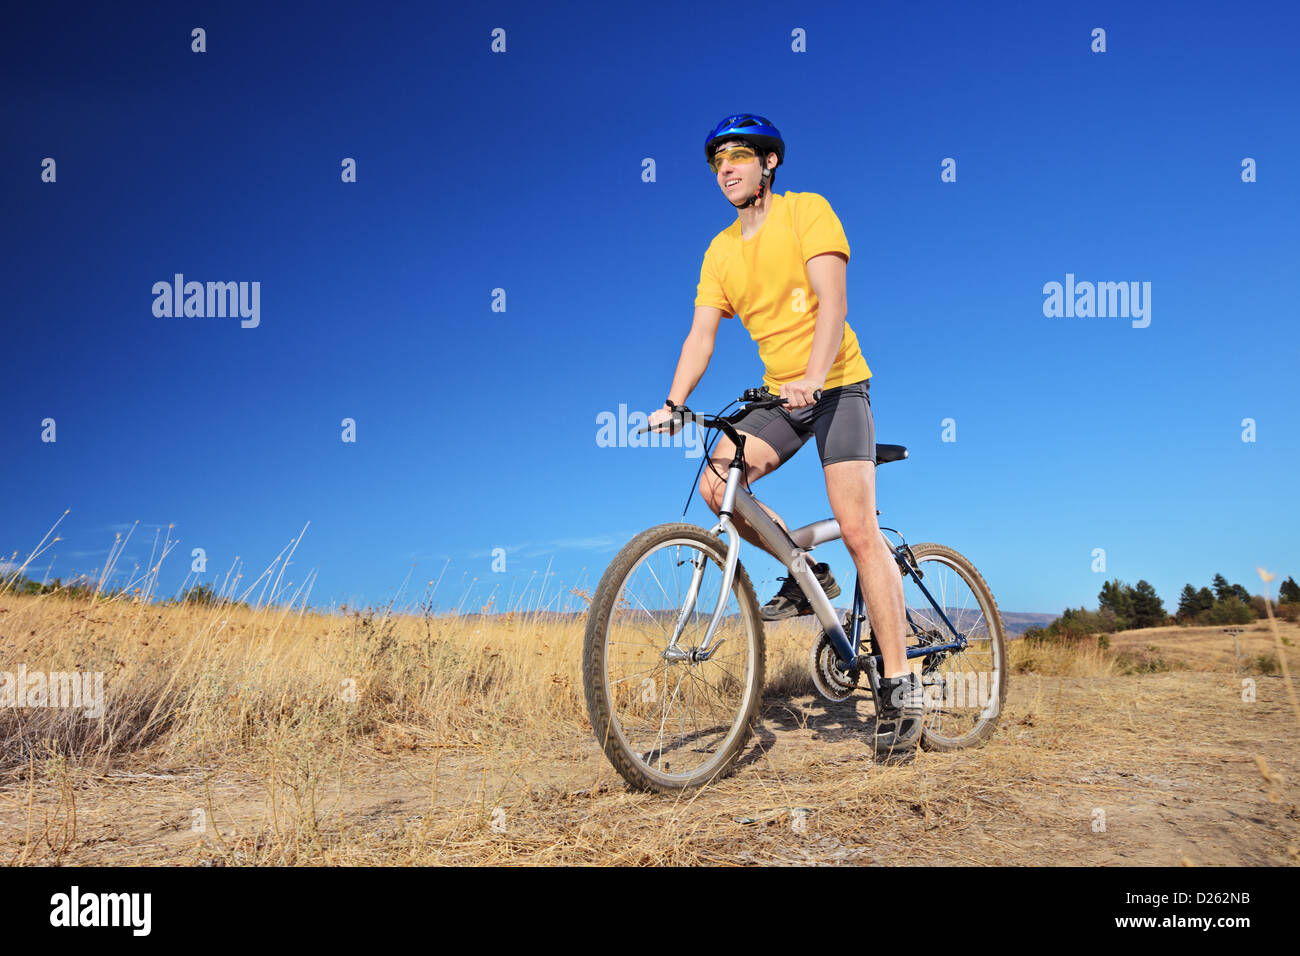 Panning shot of a bicycle rider riding a mountain bike outdoors on a sunny day against a blue sky - Stock Image